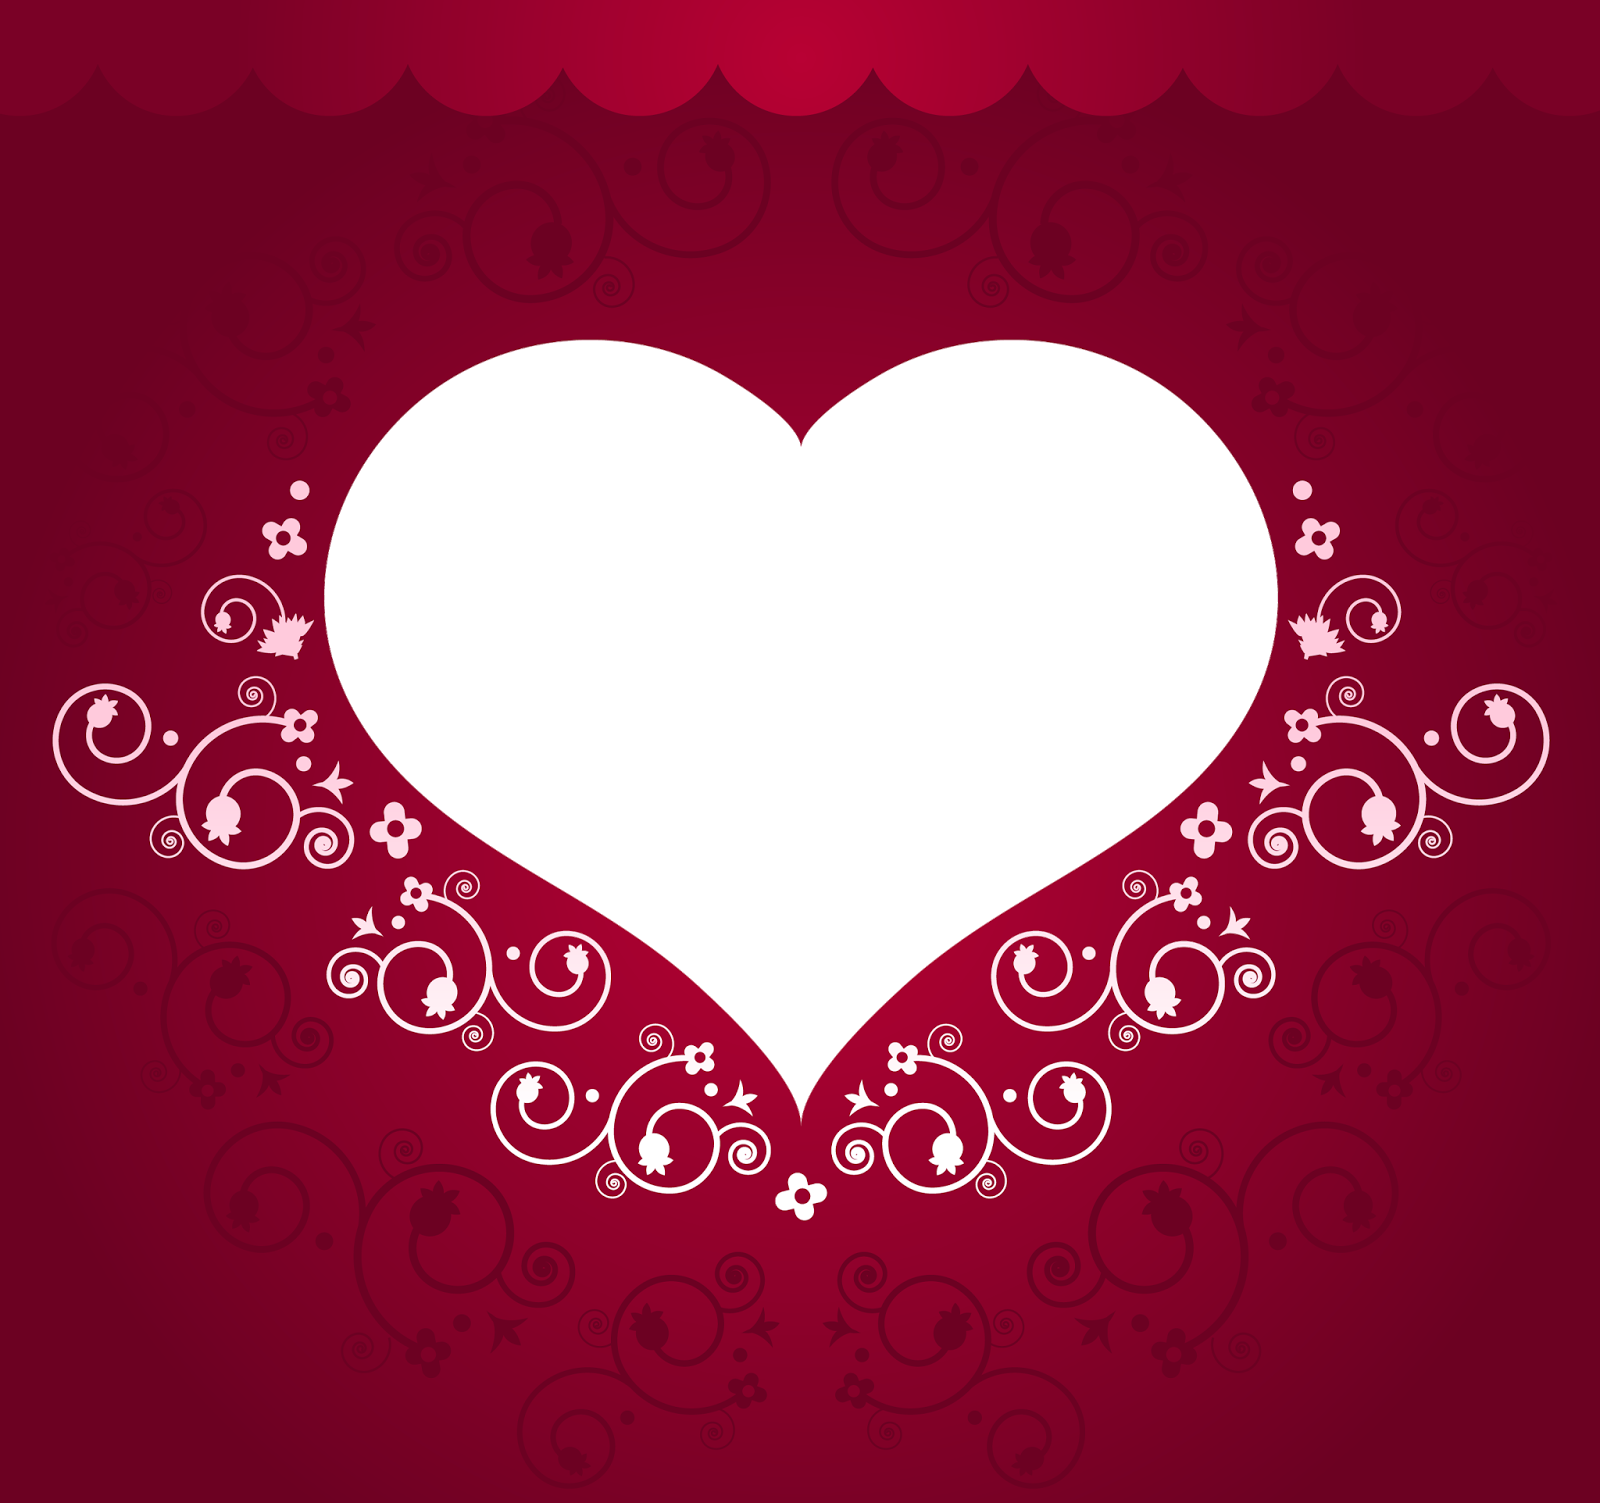 111 Free Png Frames - Heart Frames For Photos